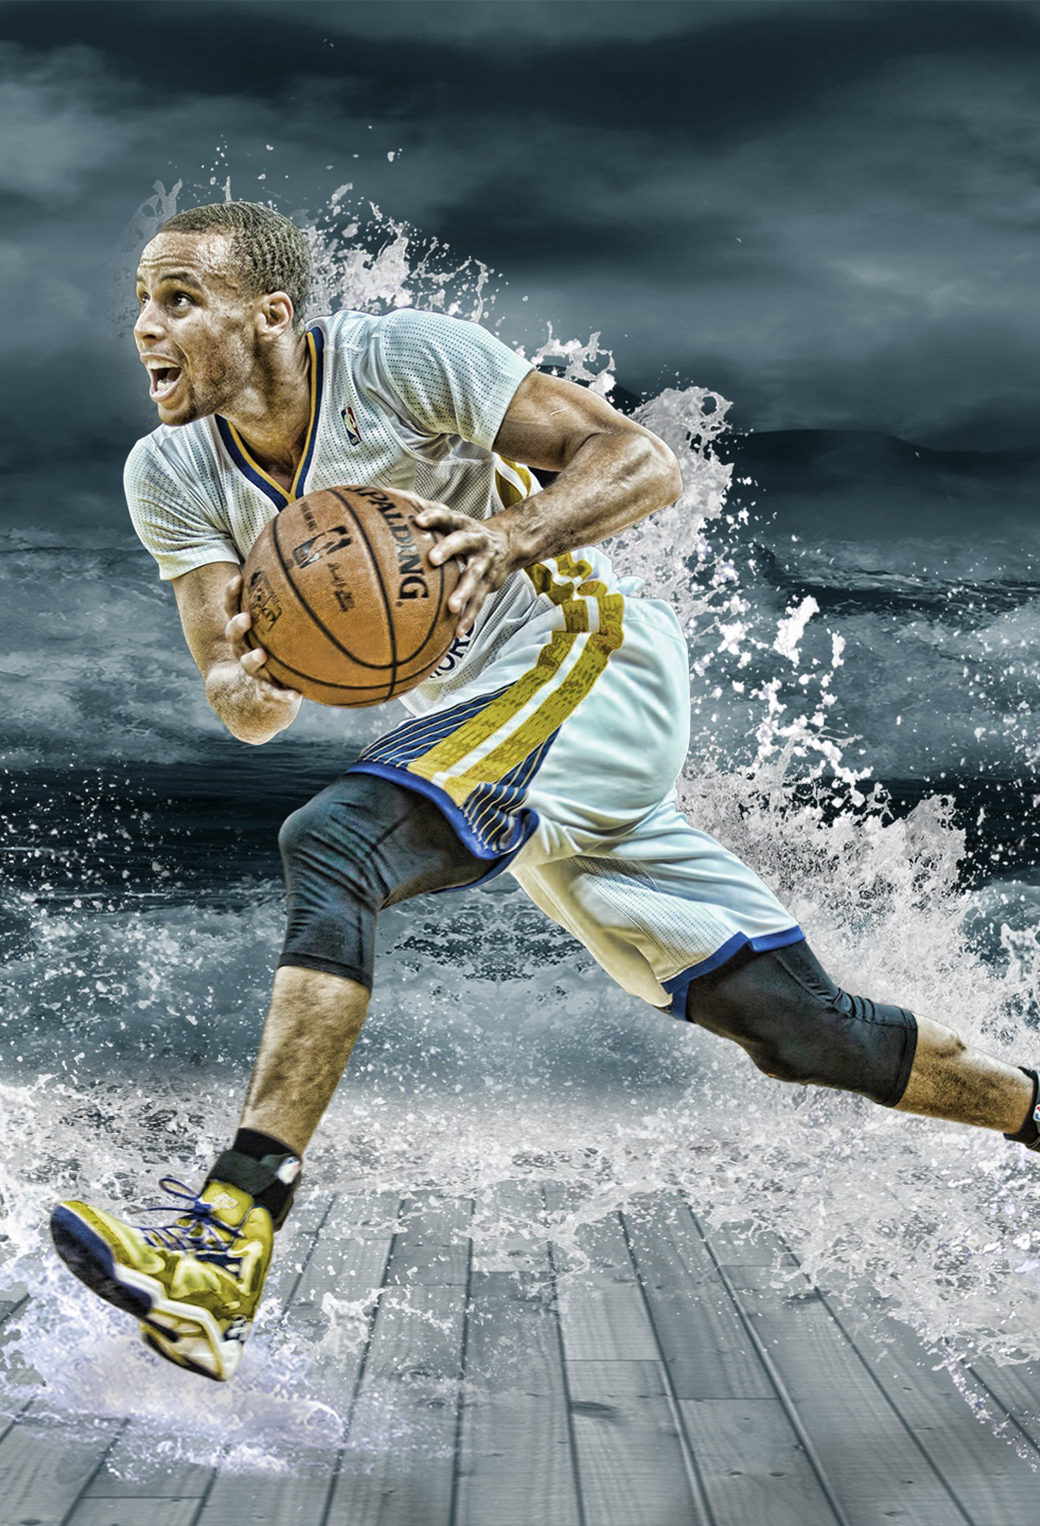 3d Parallax Wallpapers Androod Stephen Curry Splash Wallpaper For Iphone X 8 7 6